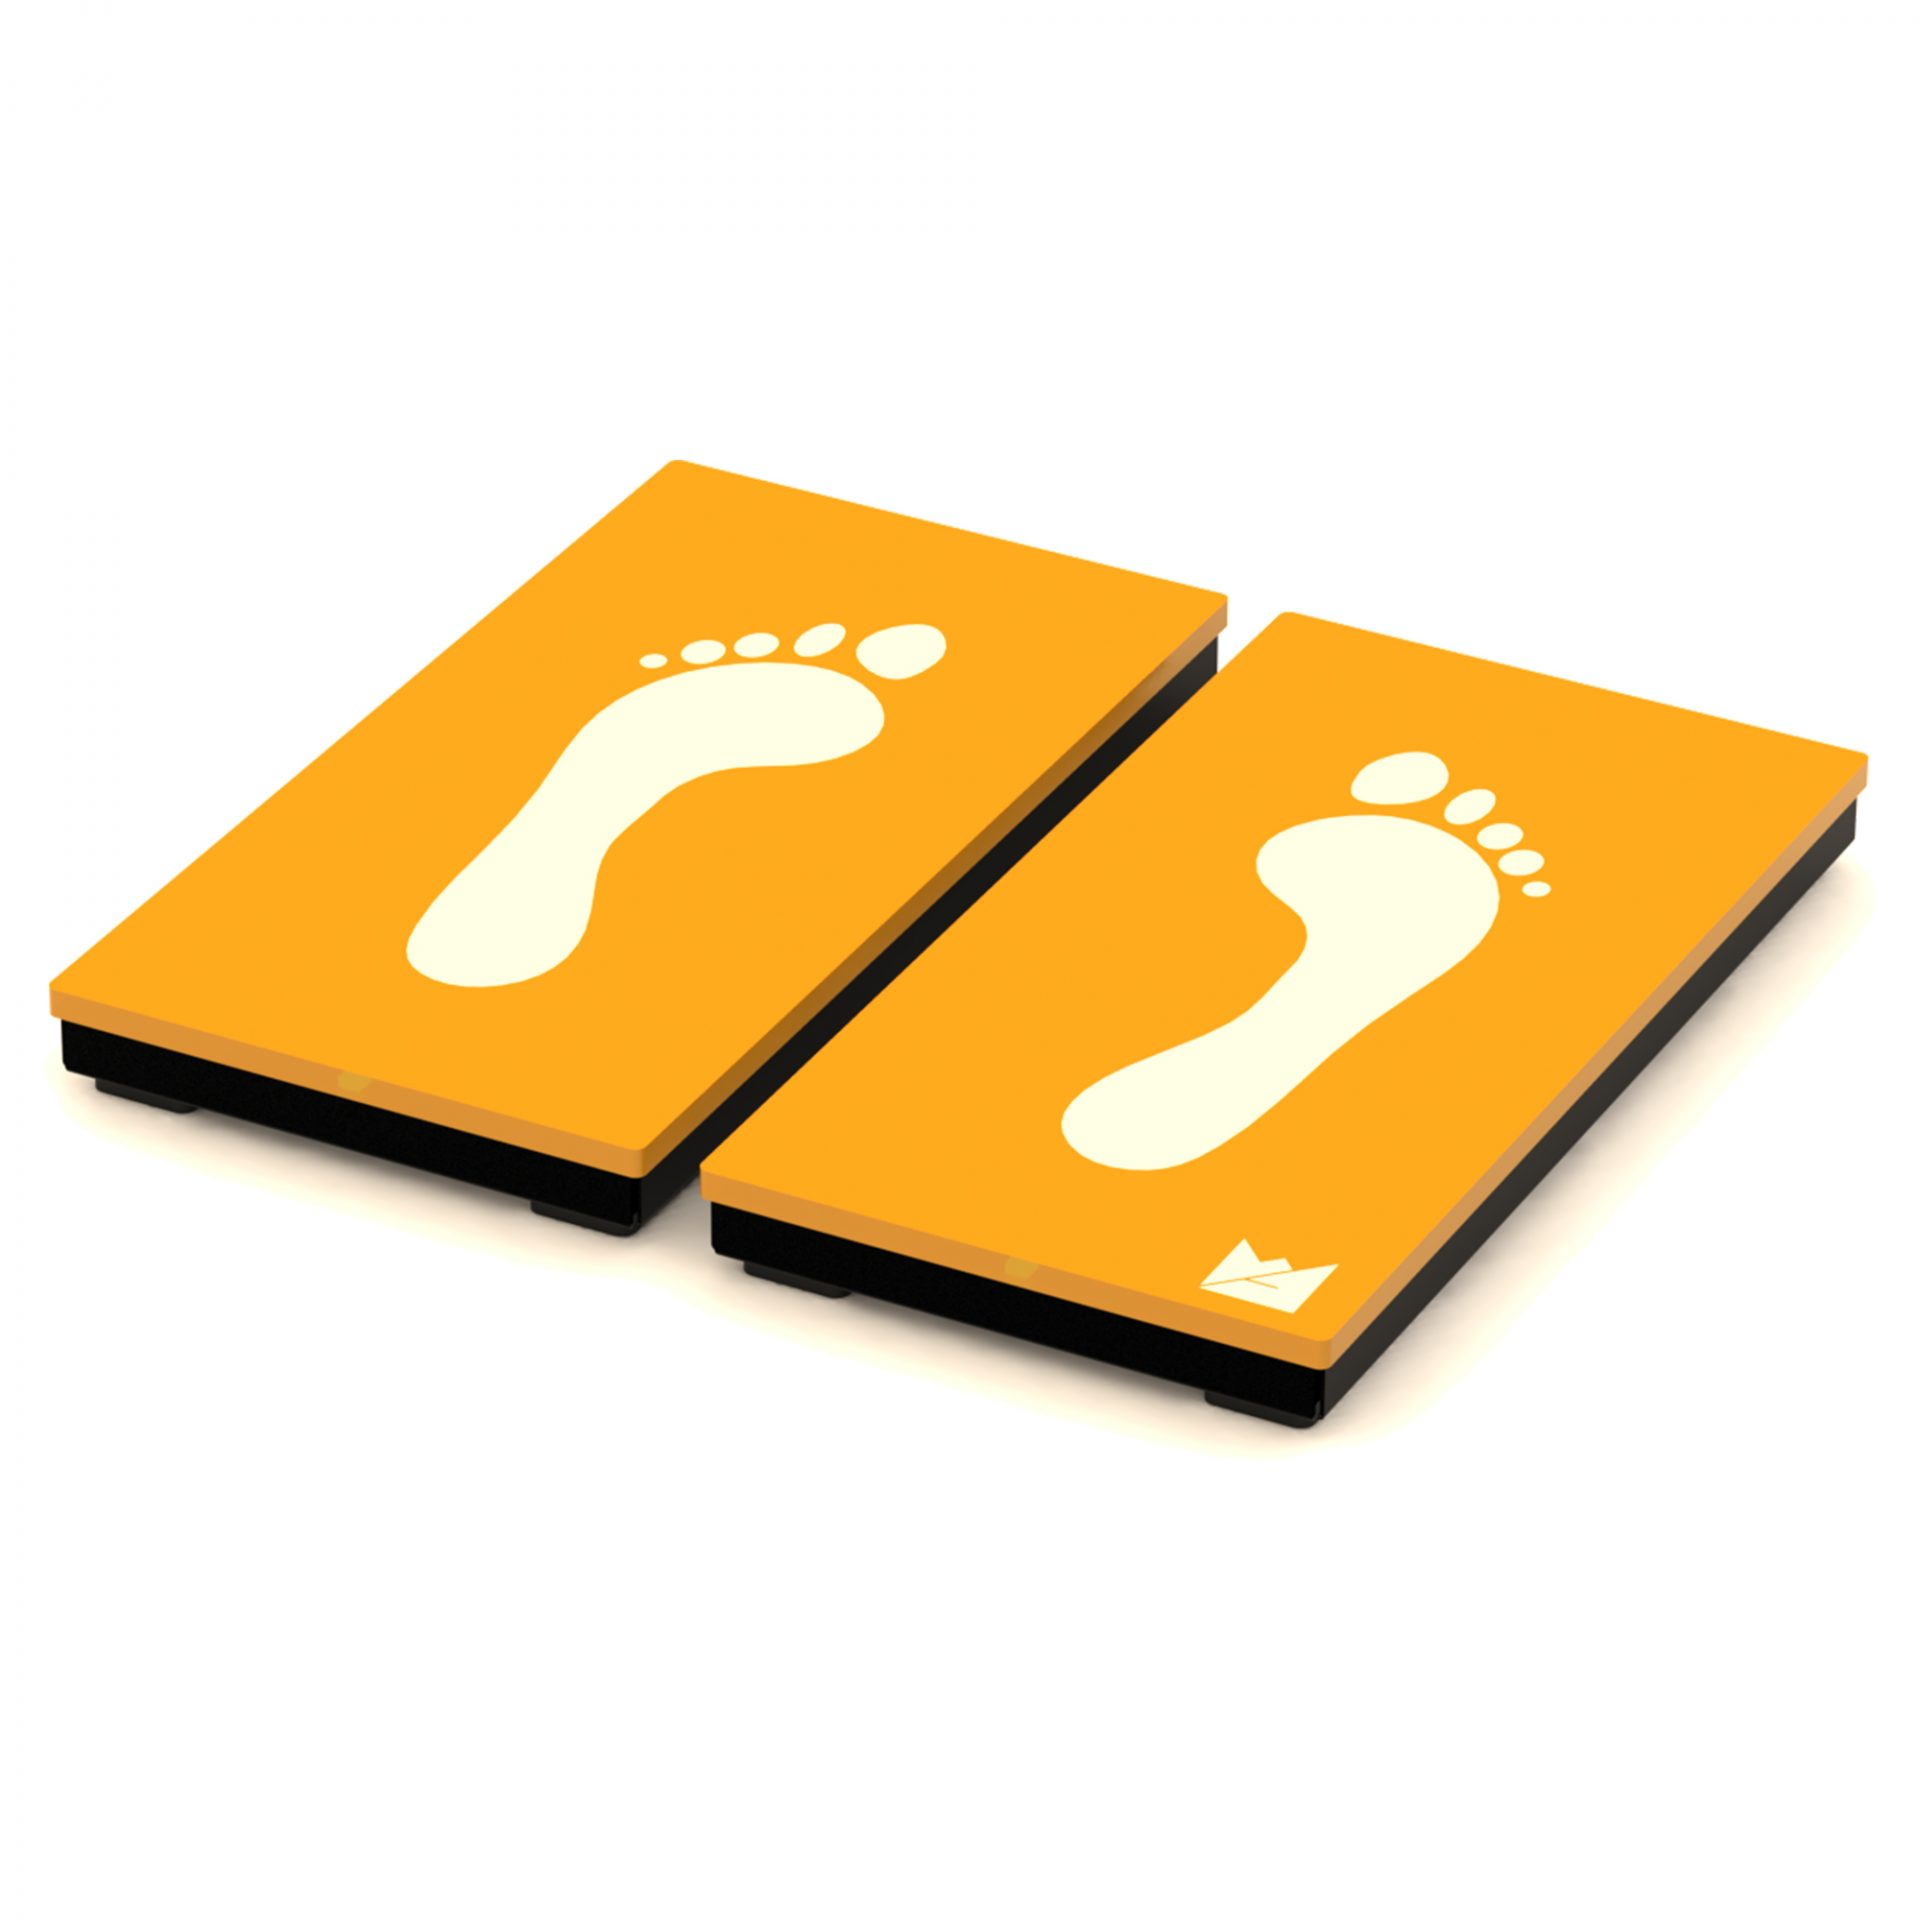 Plates by Kinvent. Force Plates for Physios and Sport Pros